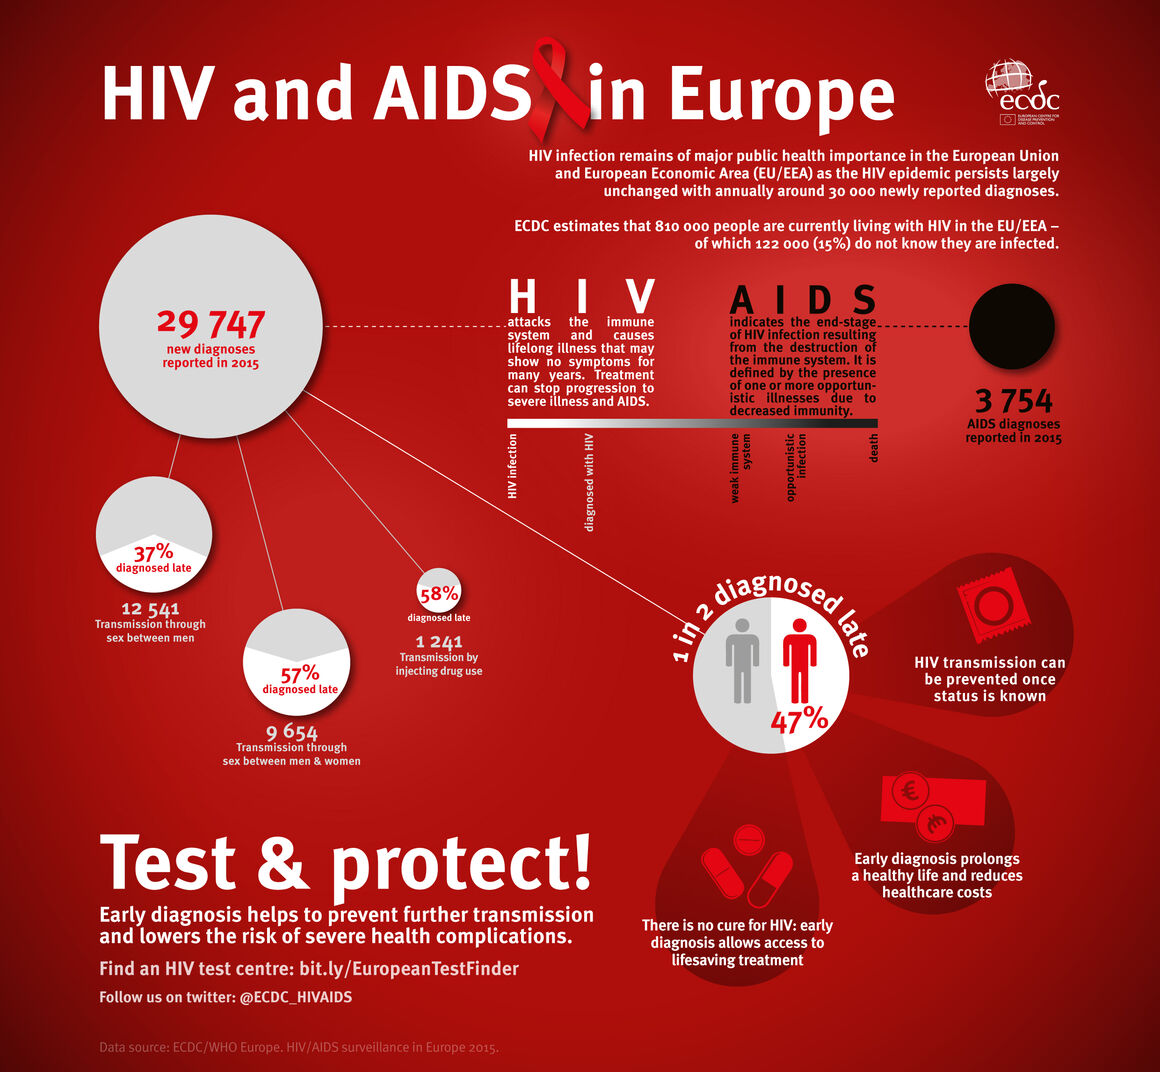 Infographic showing HIV surveillance data in 2015